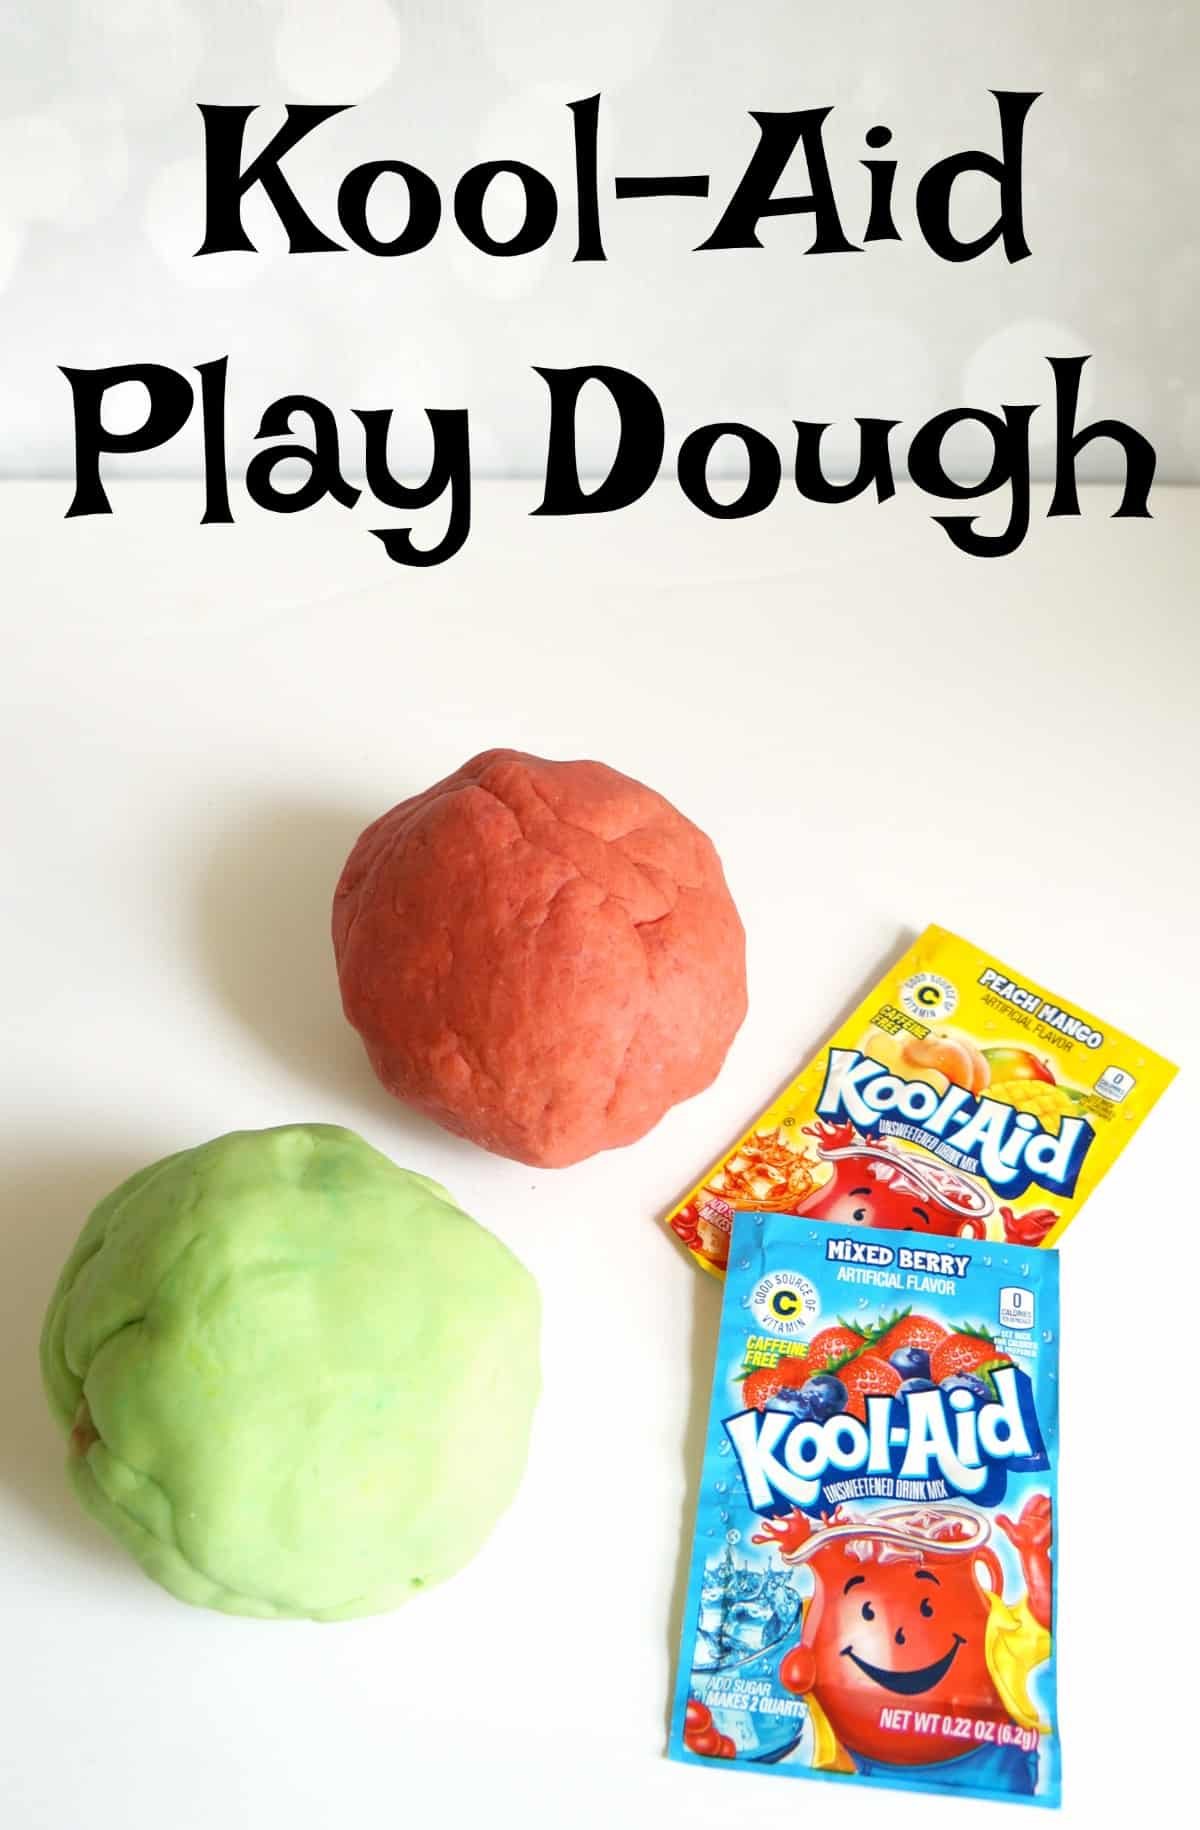 Simple recipe for Kool-Aid play dough